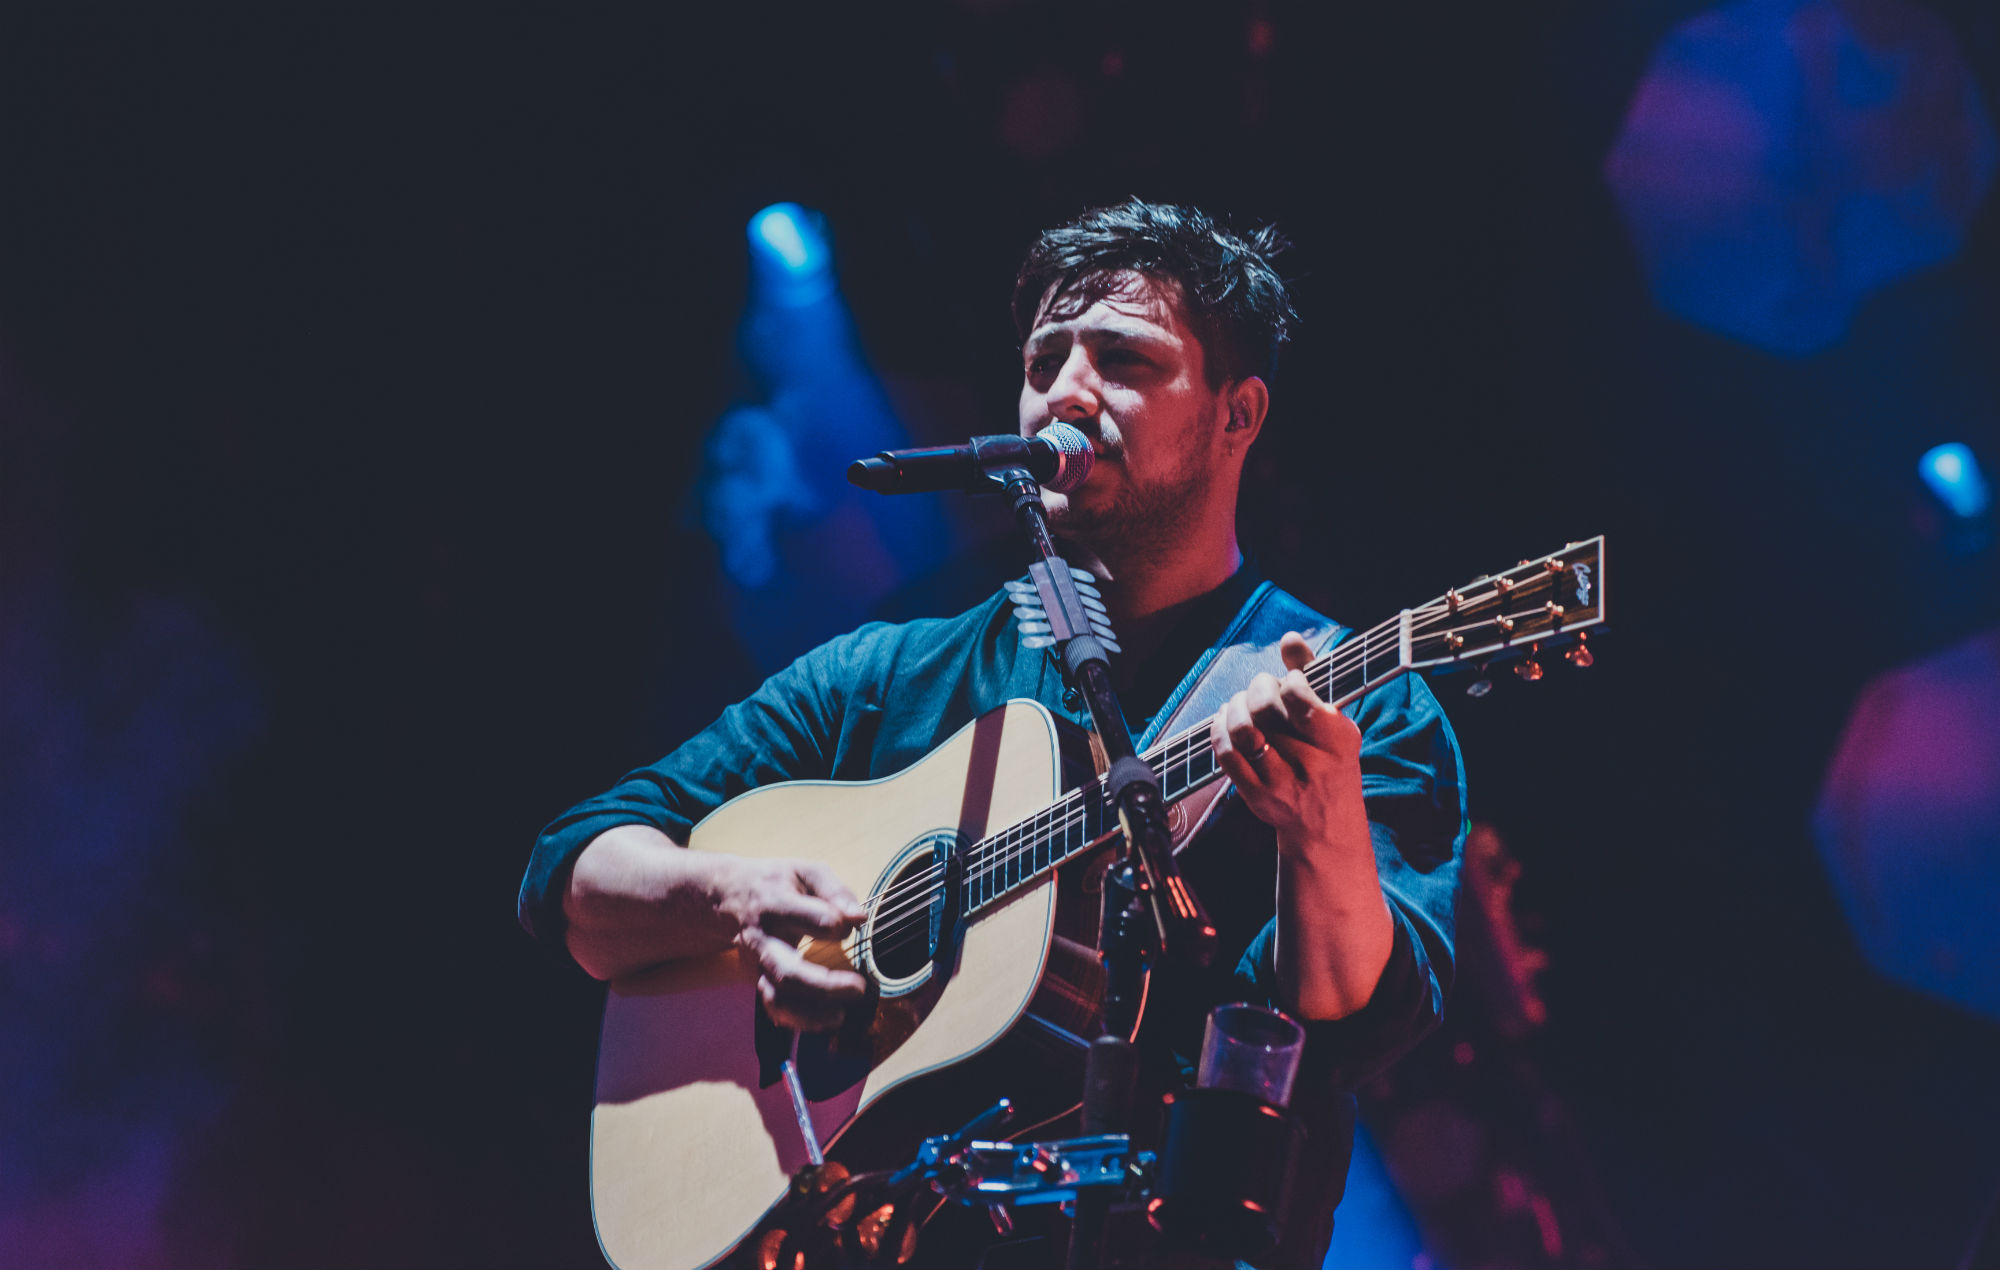 Marcus Mumford shares cover of 'You'll Never Walk Alone' to benefit Grenfell Foundation - EpicNews